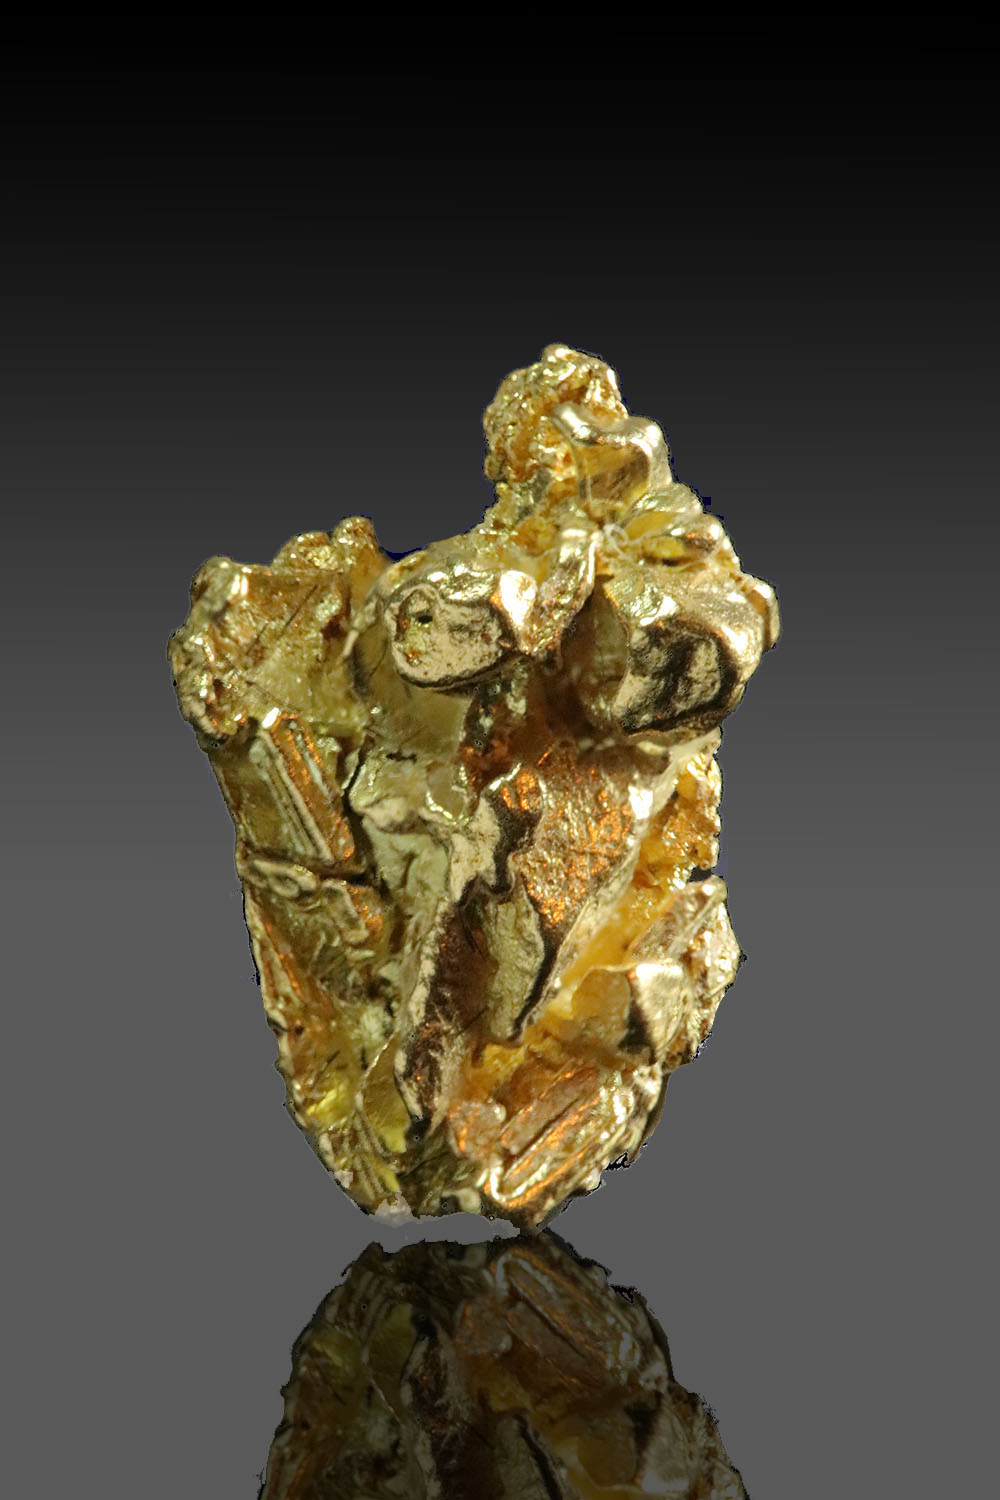 Well Crystalized Gold Cluster - Yukon